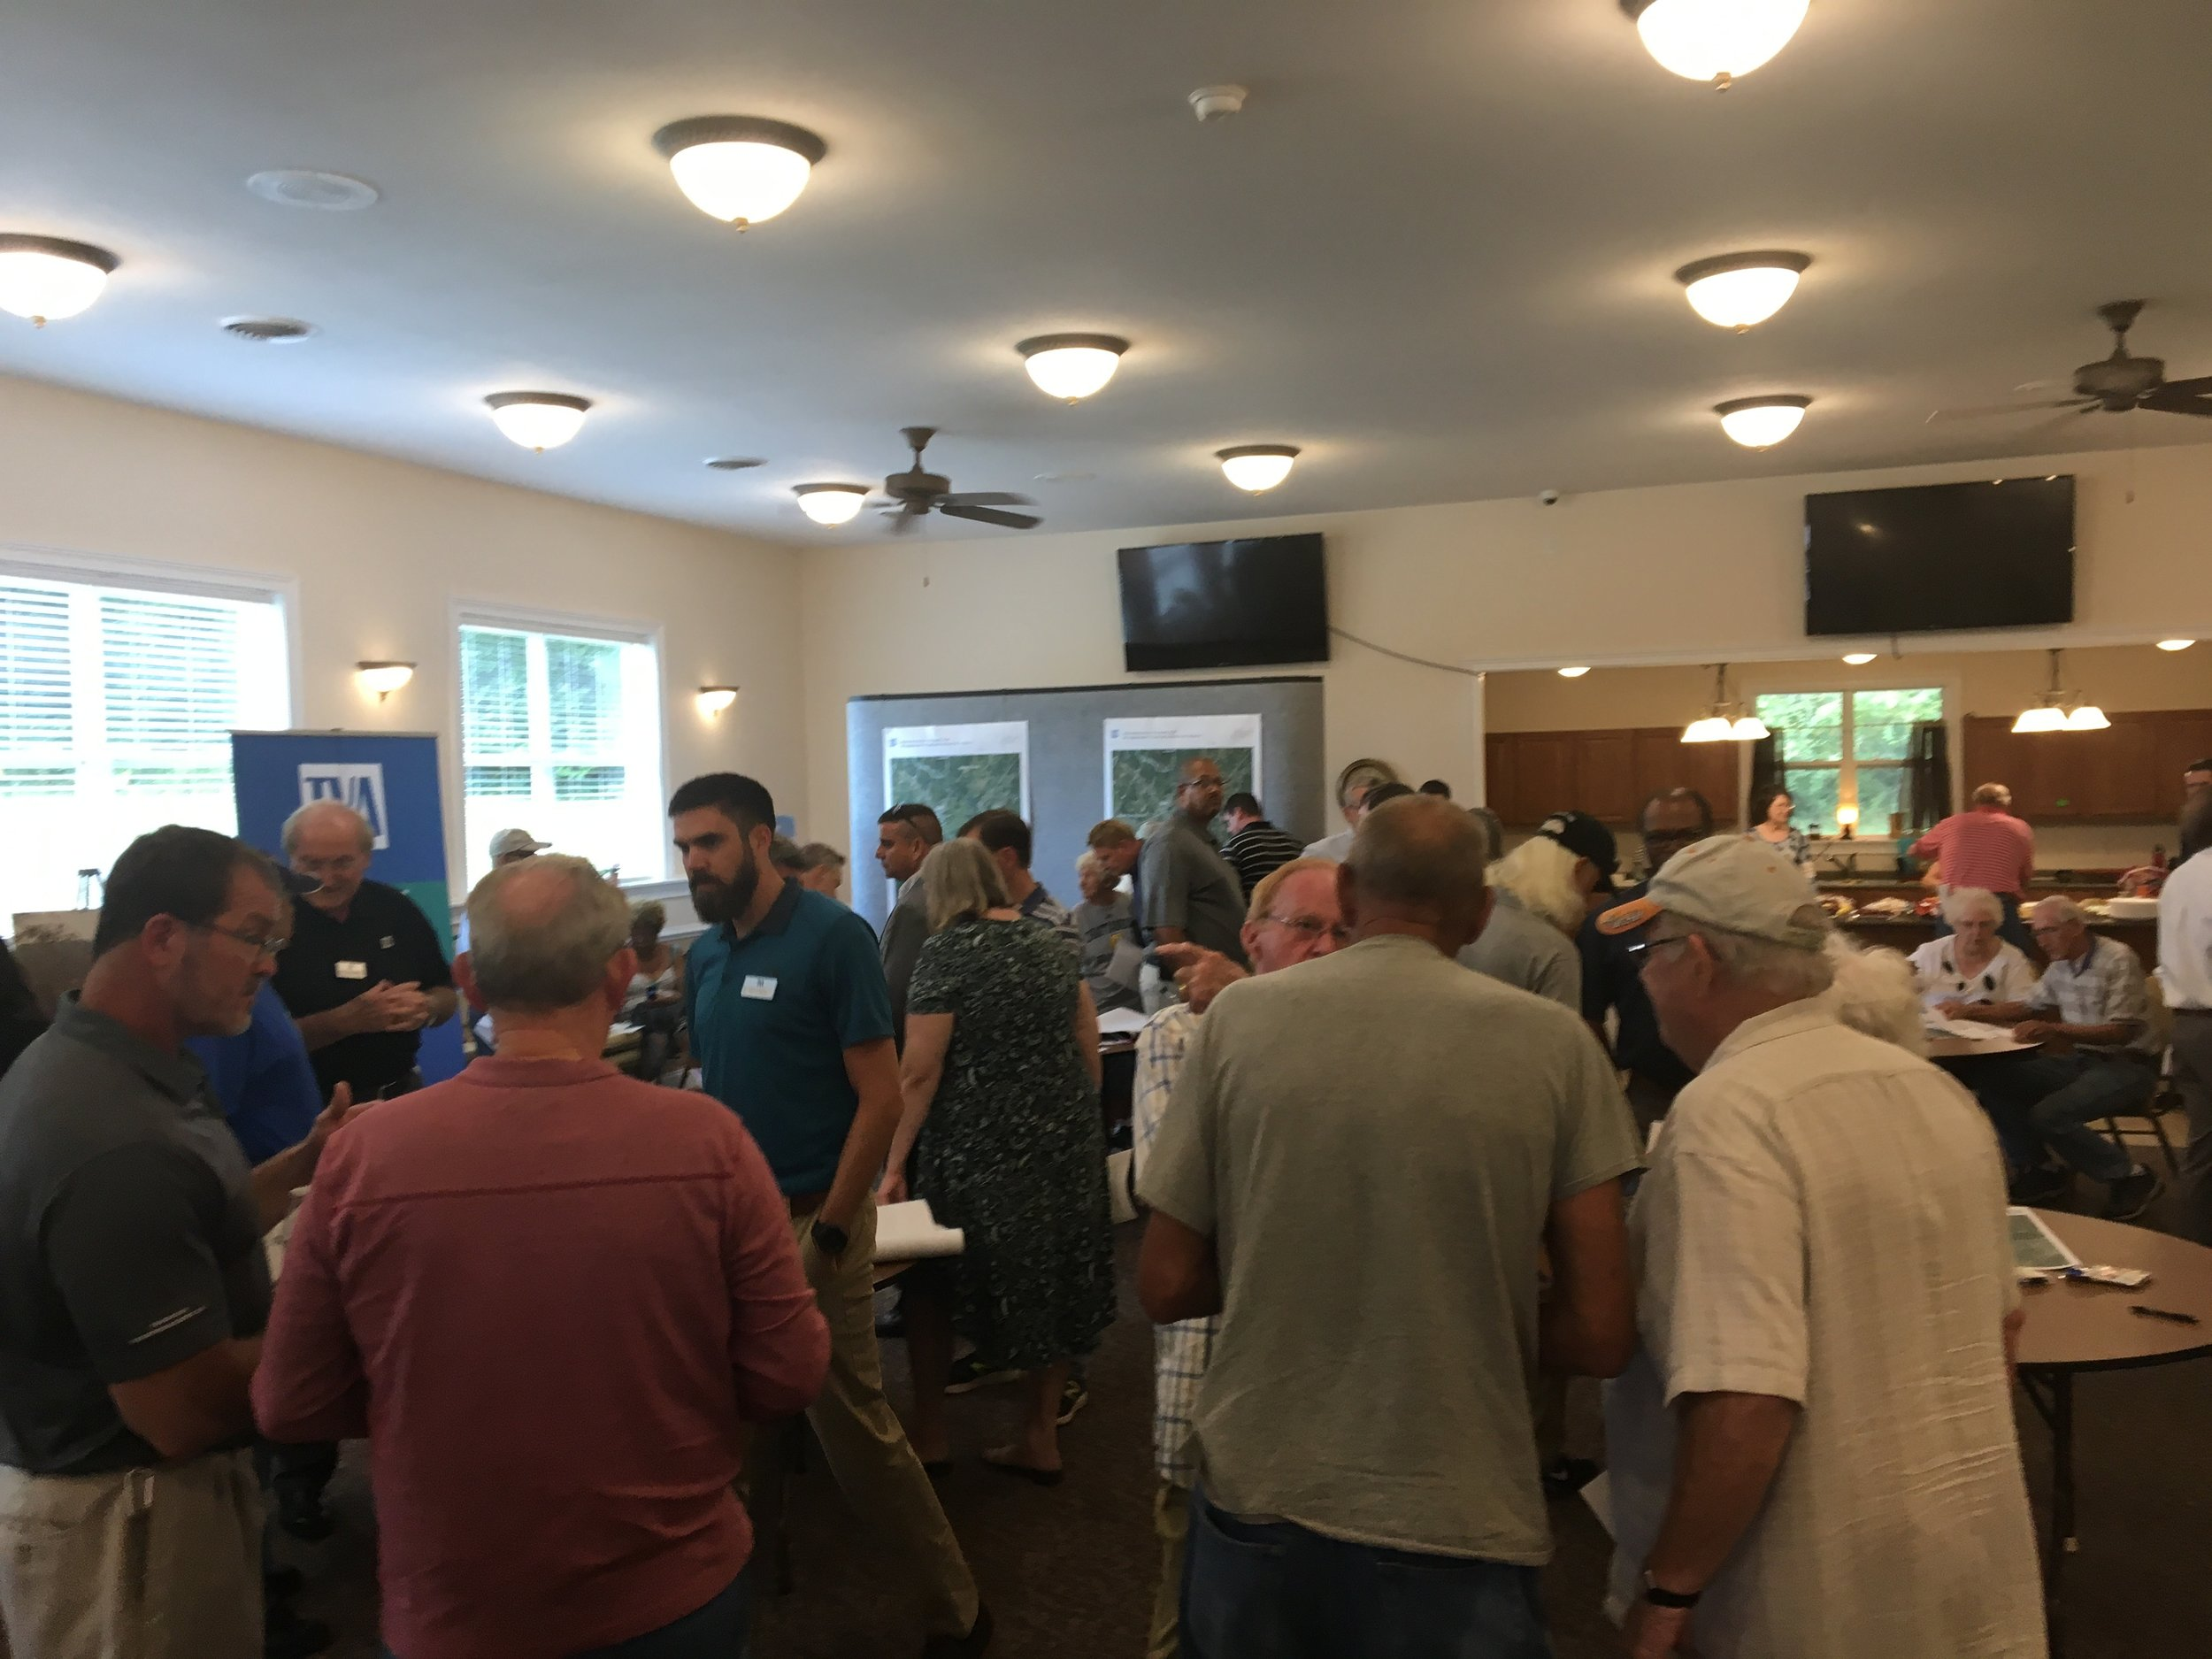 Georgetown residents turned out in mass in August 2018 in Georgetown to talk with TVA. A total of 74 invitations were sent out to property owners potentially impacted by the secret, $300 million power control center, and more than 150 turned out! TVA has refused to hold another meeting since.